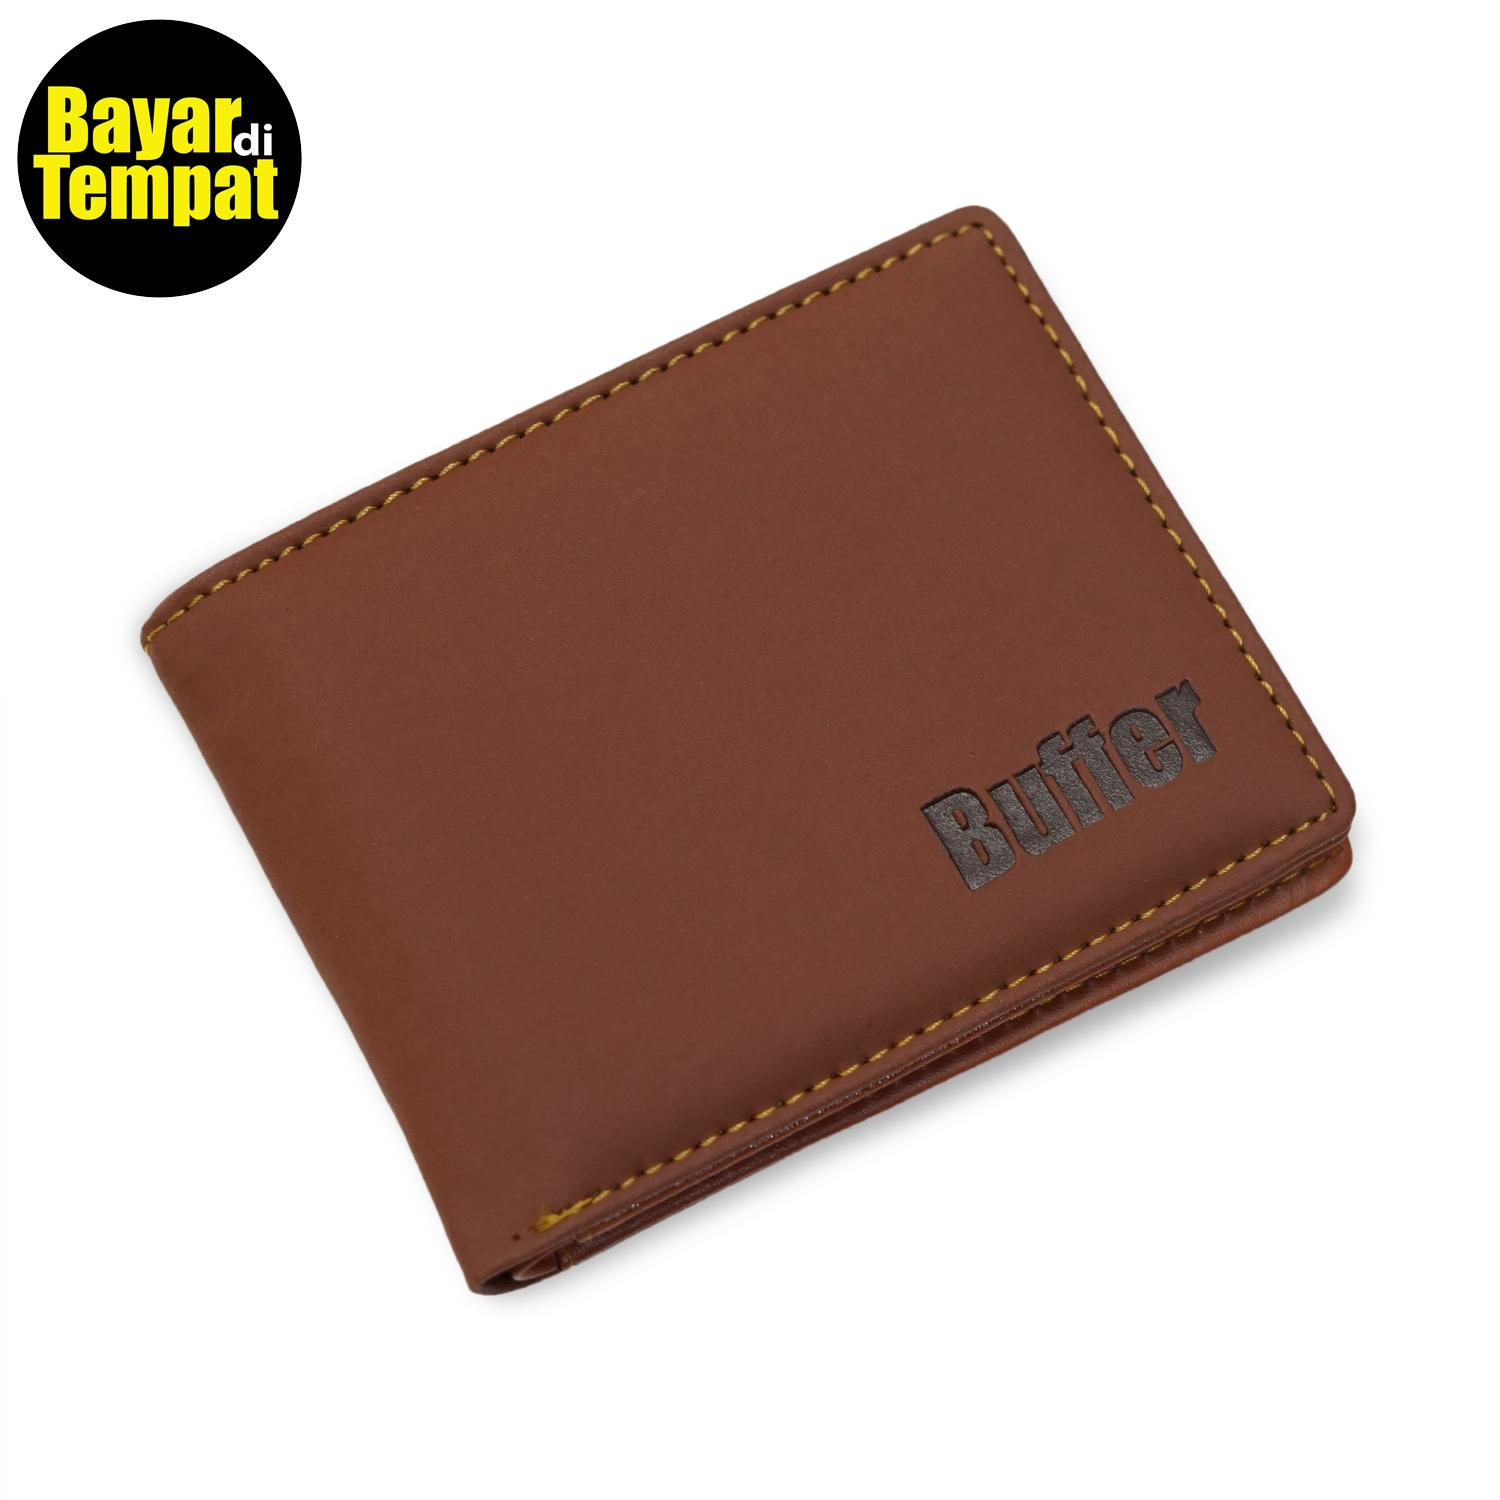 Dompet Fashion Pria 5 Inchi 1878 Kulit Sintetis Simple -Lokal Landscape By Bag Brother.